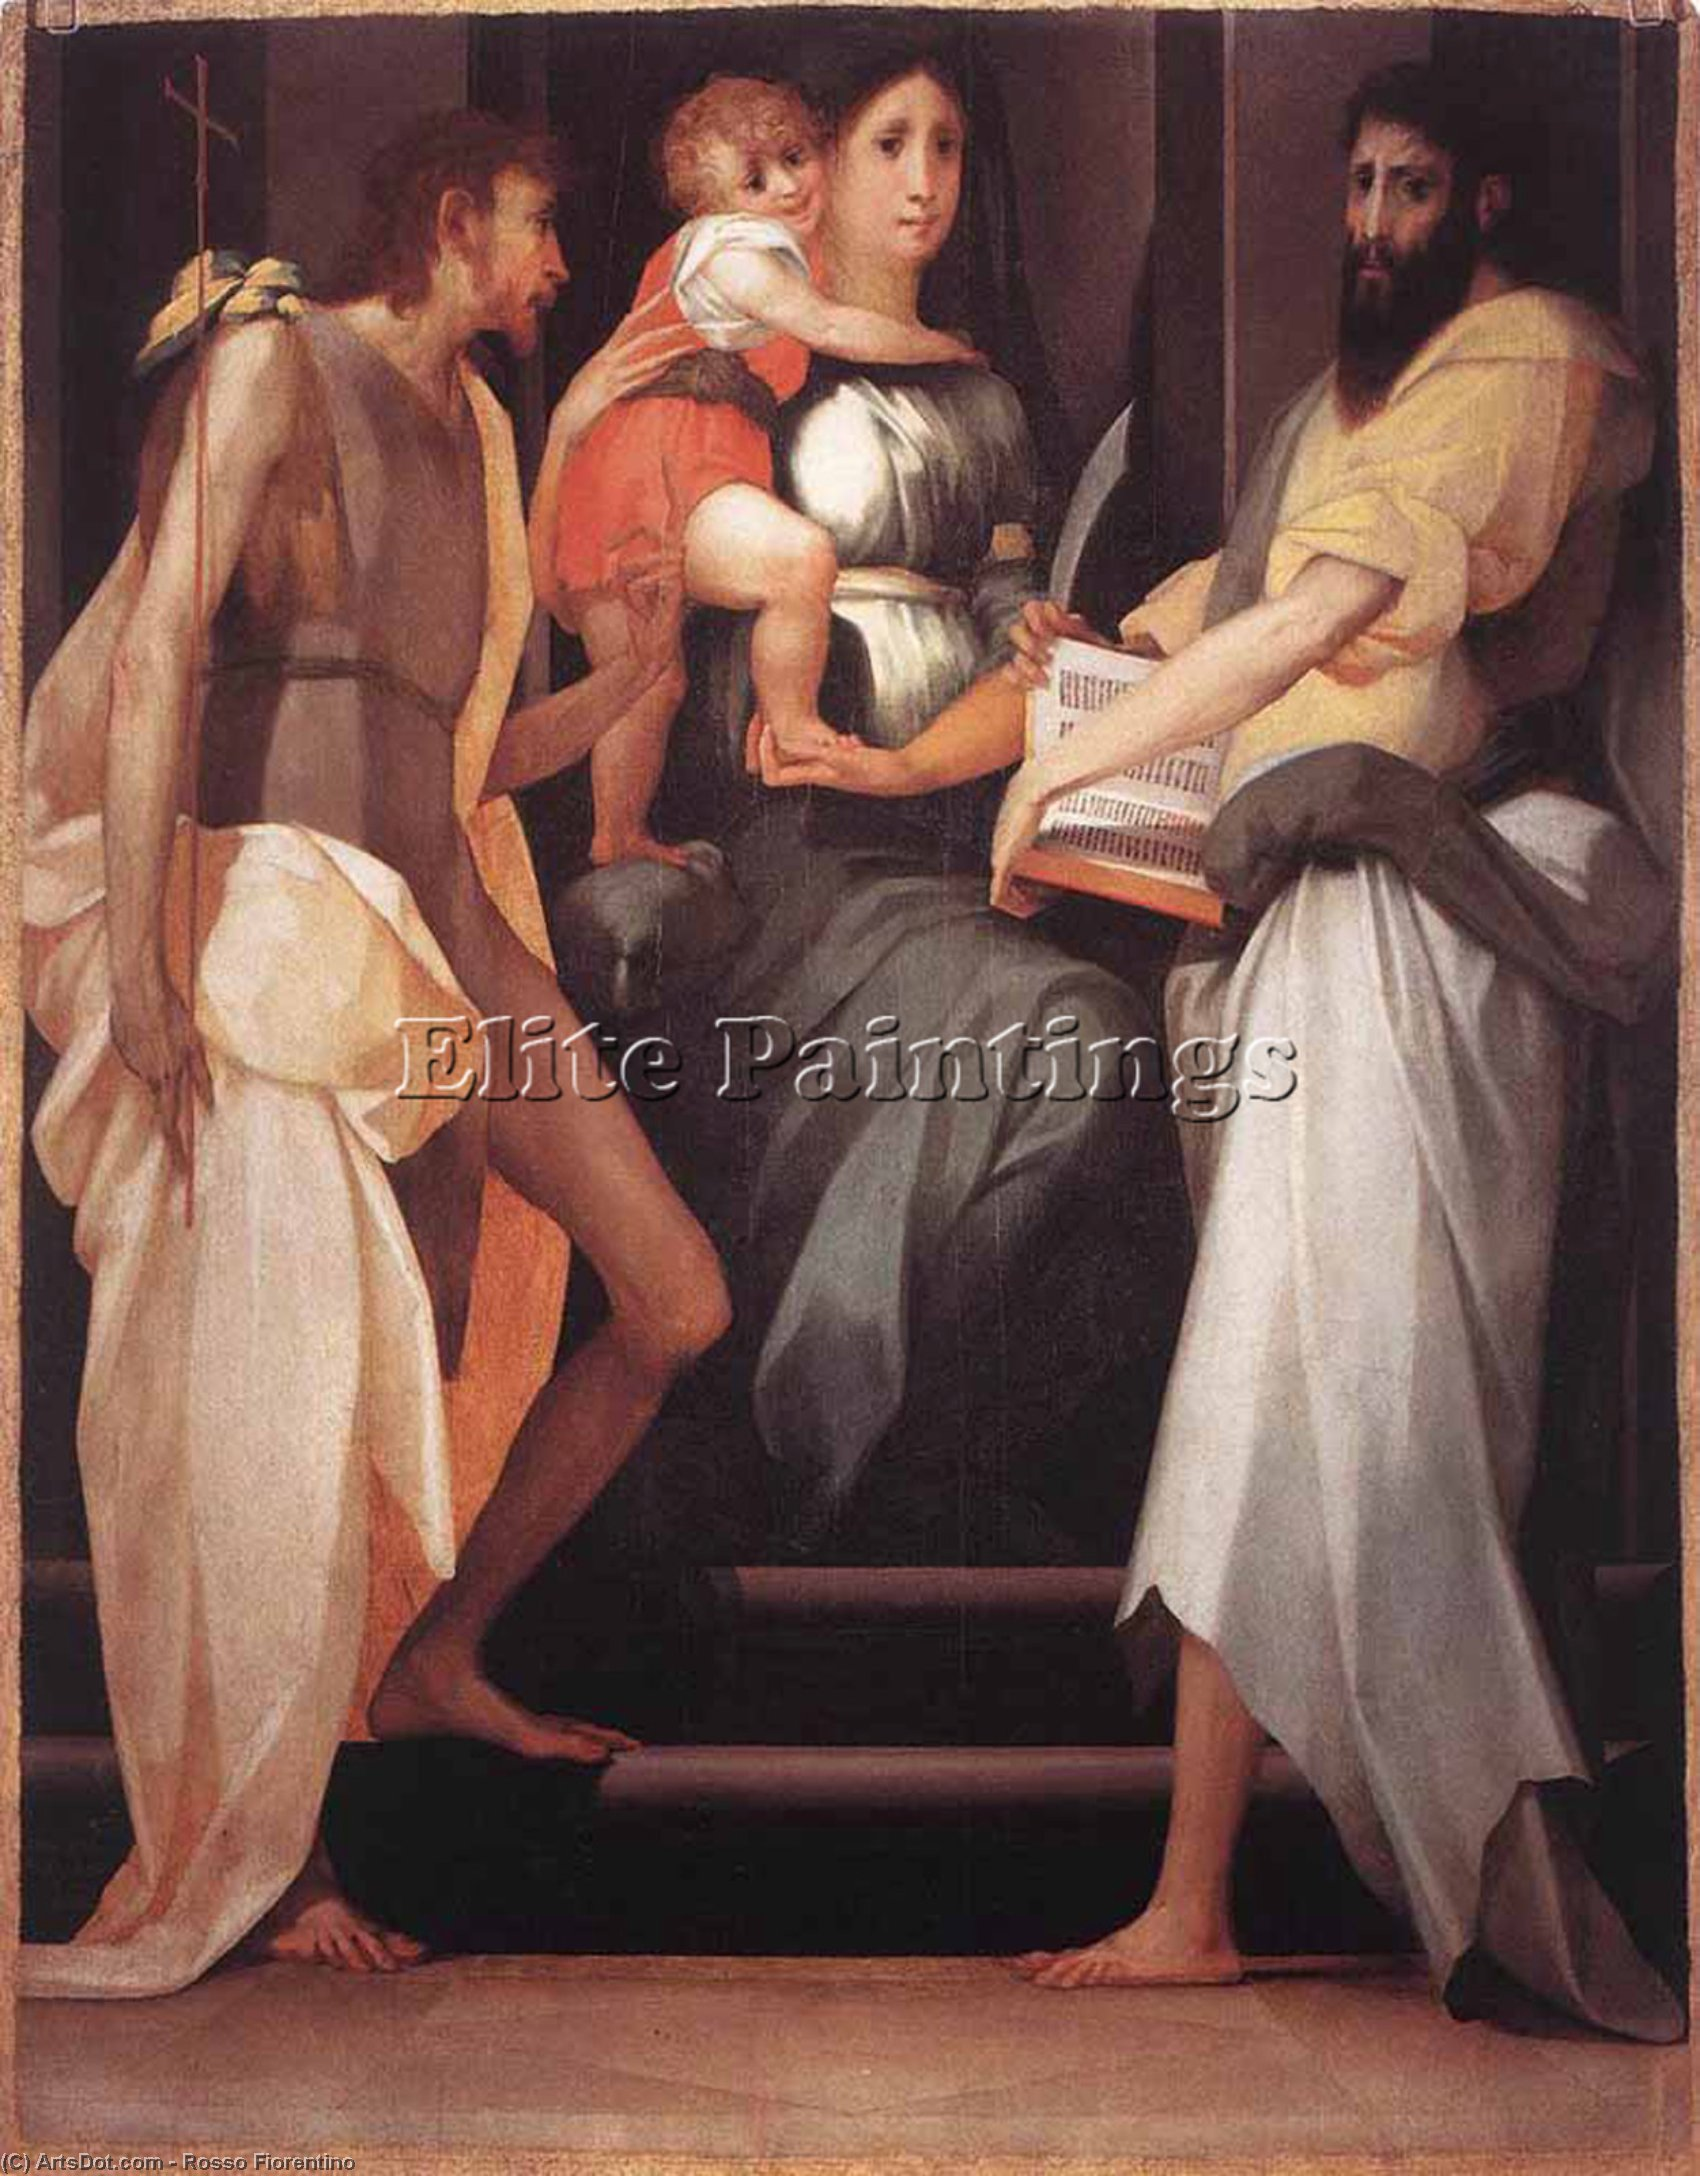 Wikioo.org - The Encyclopedia of Fine Arts - Painting, Artwork by Rosso Fiorentino - Madonna Enthroned between Two Saints